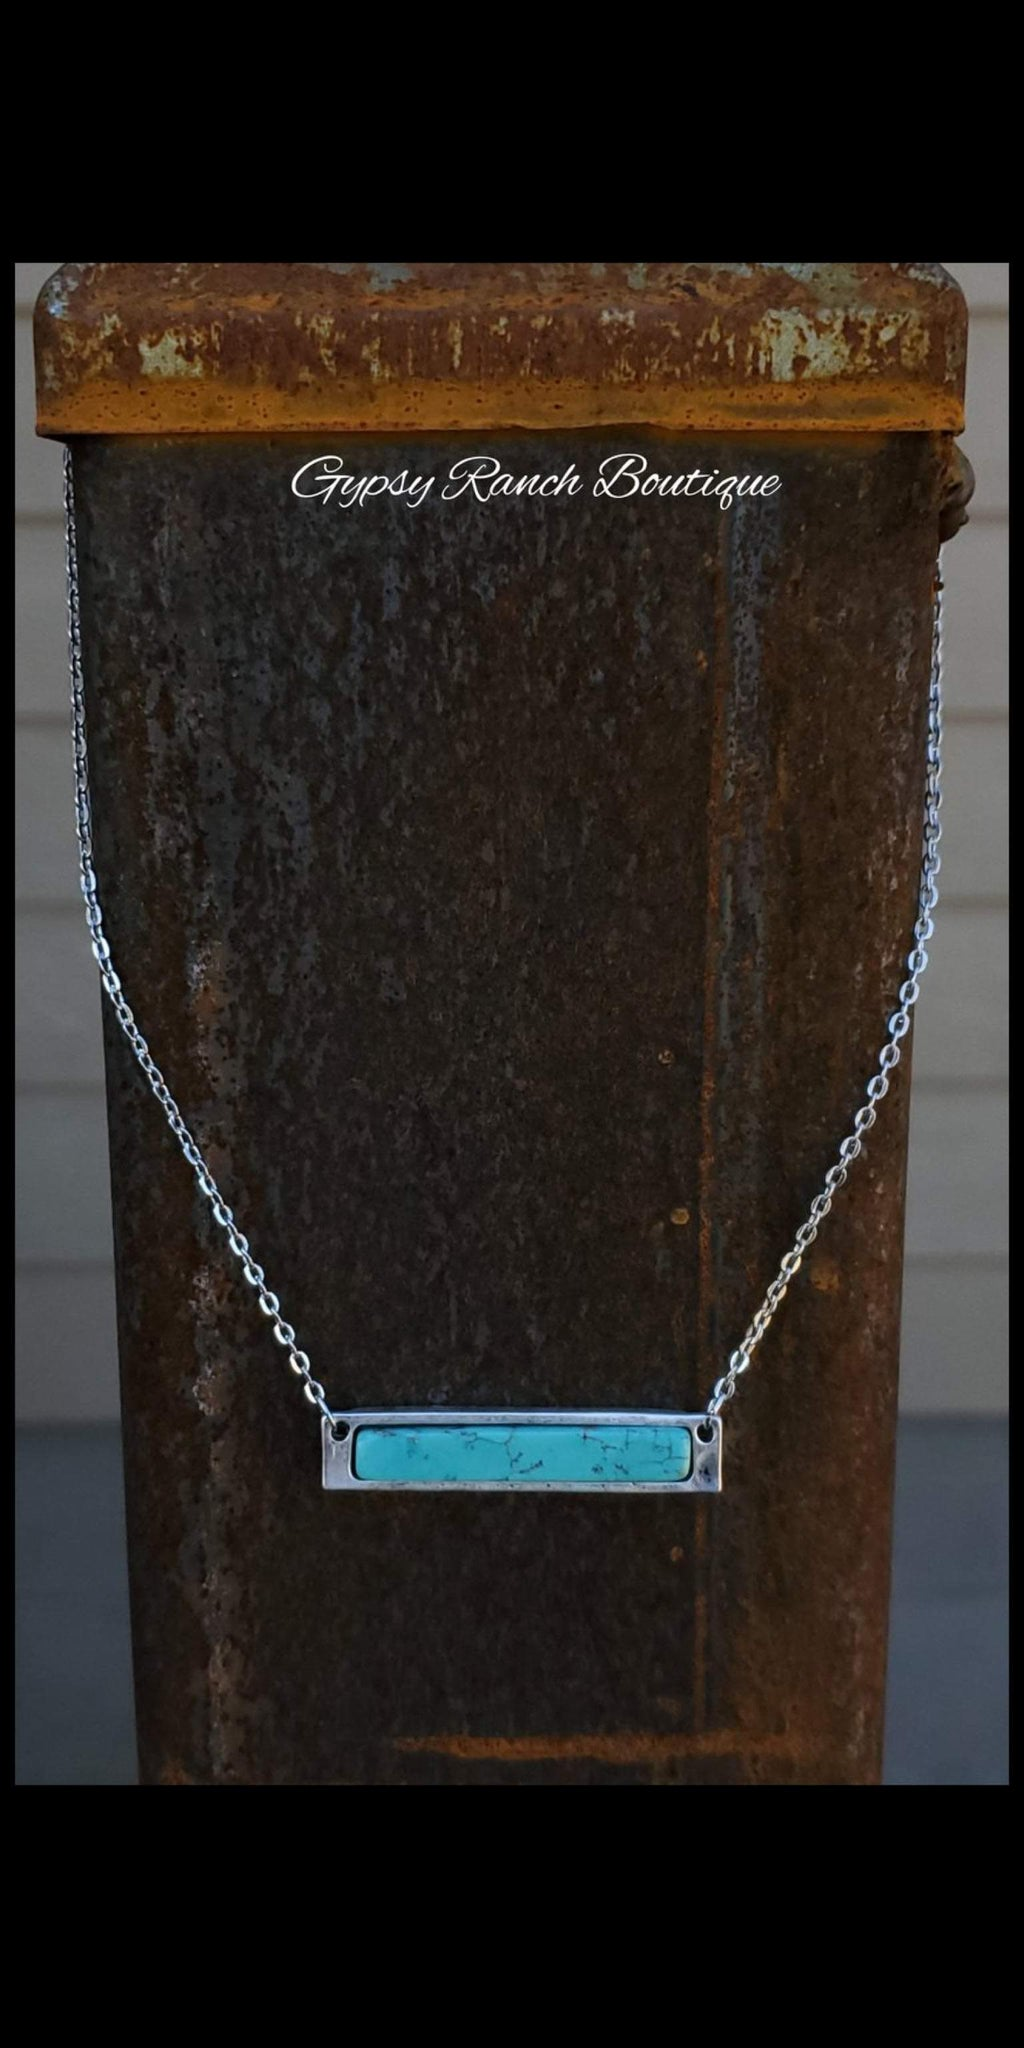 Bar T Turquoise Necklace